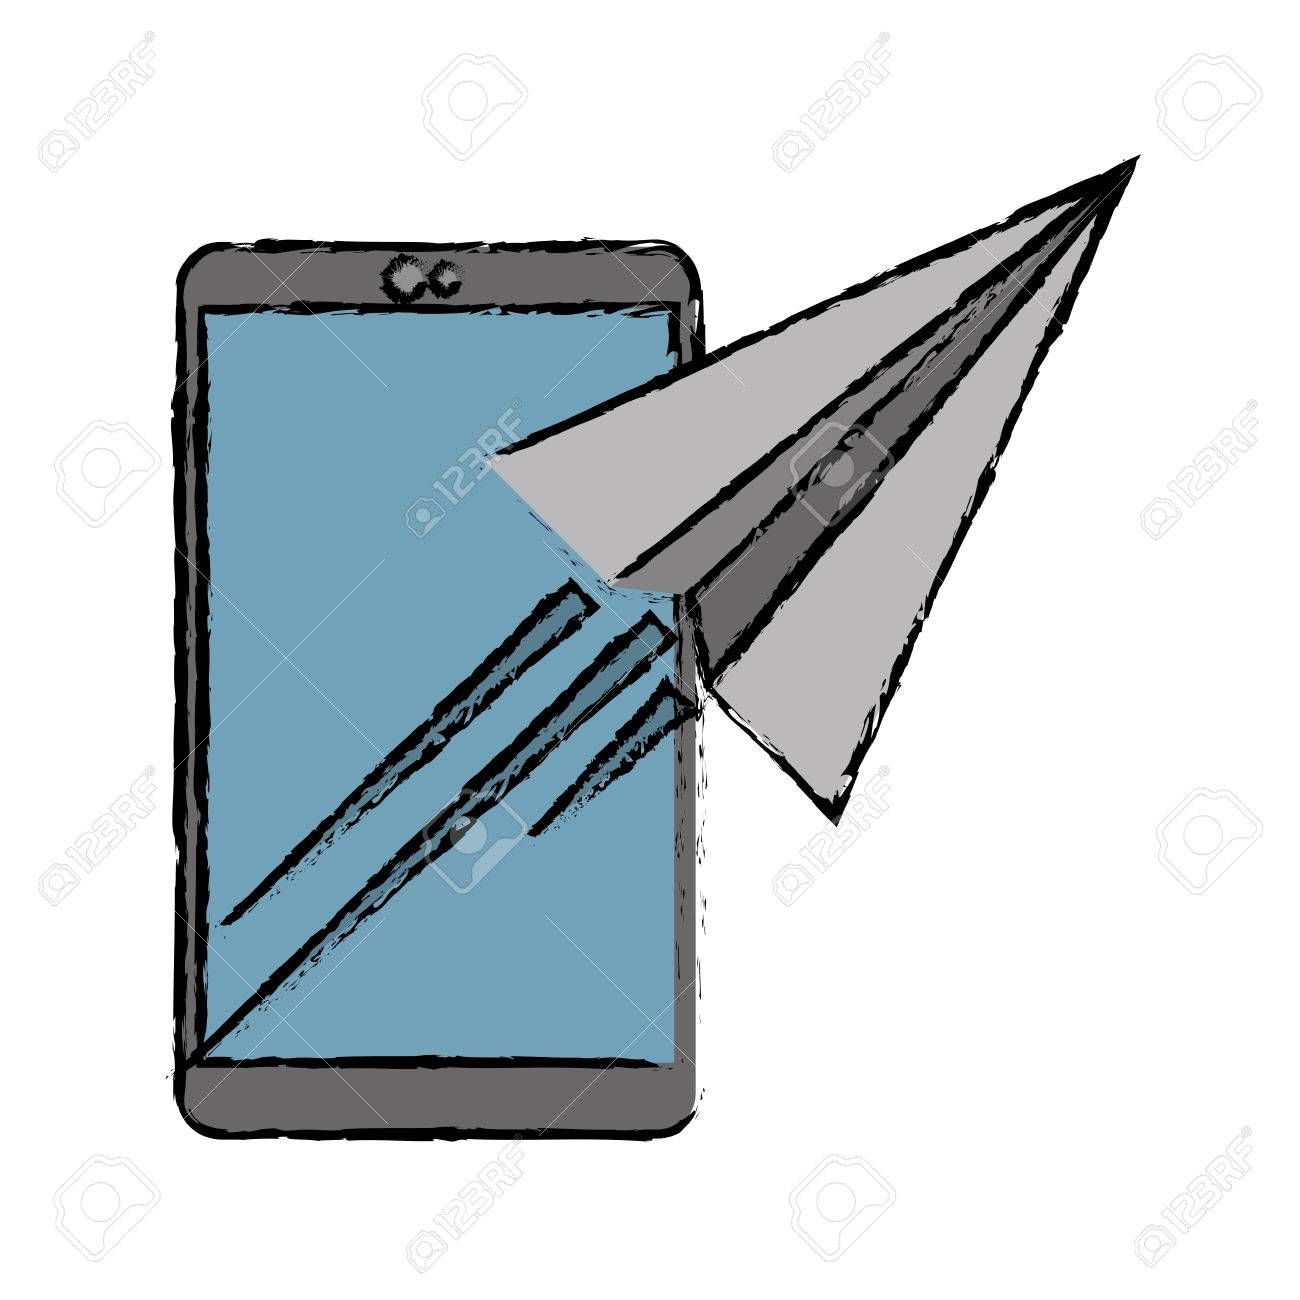 1300x1300 Drawing Smartphone Sending Email Concept Vector Illustration